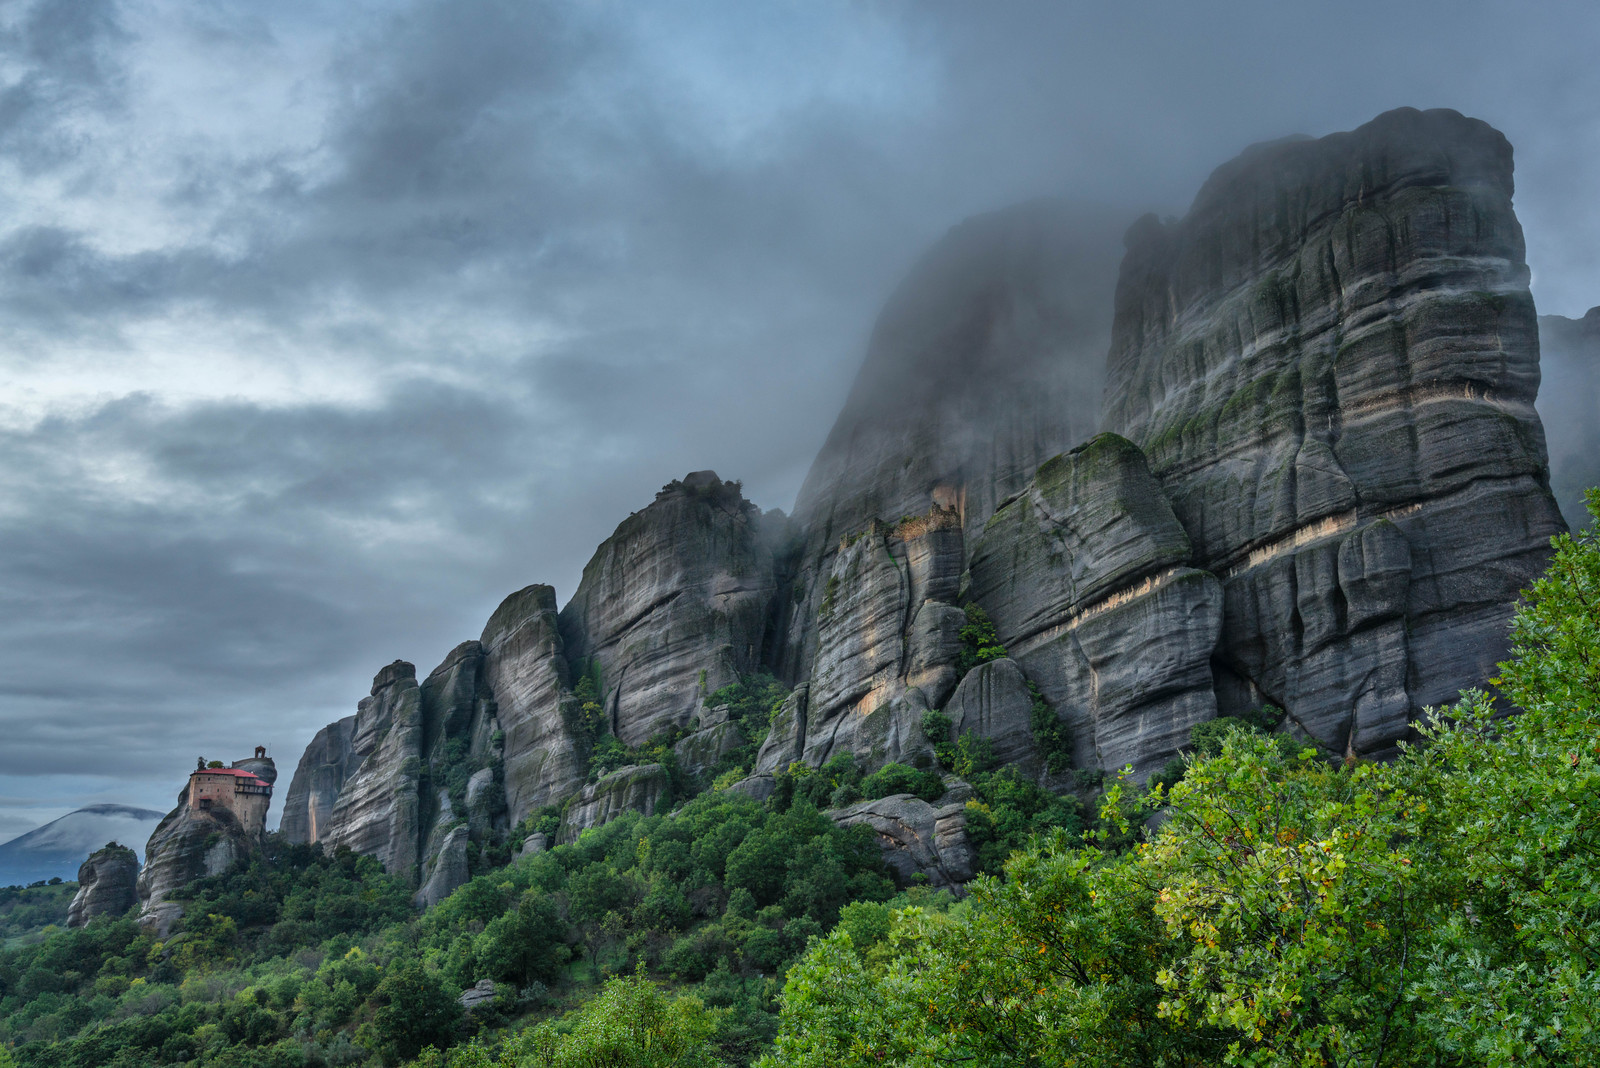 Meteora is filled with massive stone monoliths.